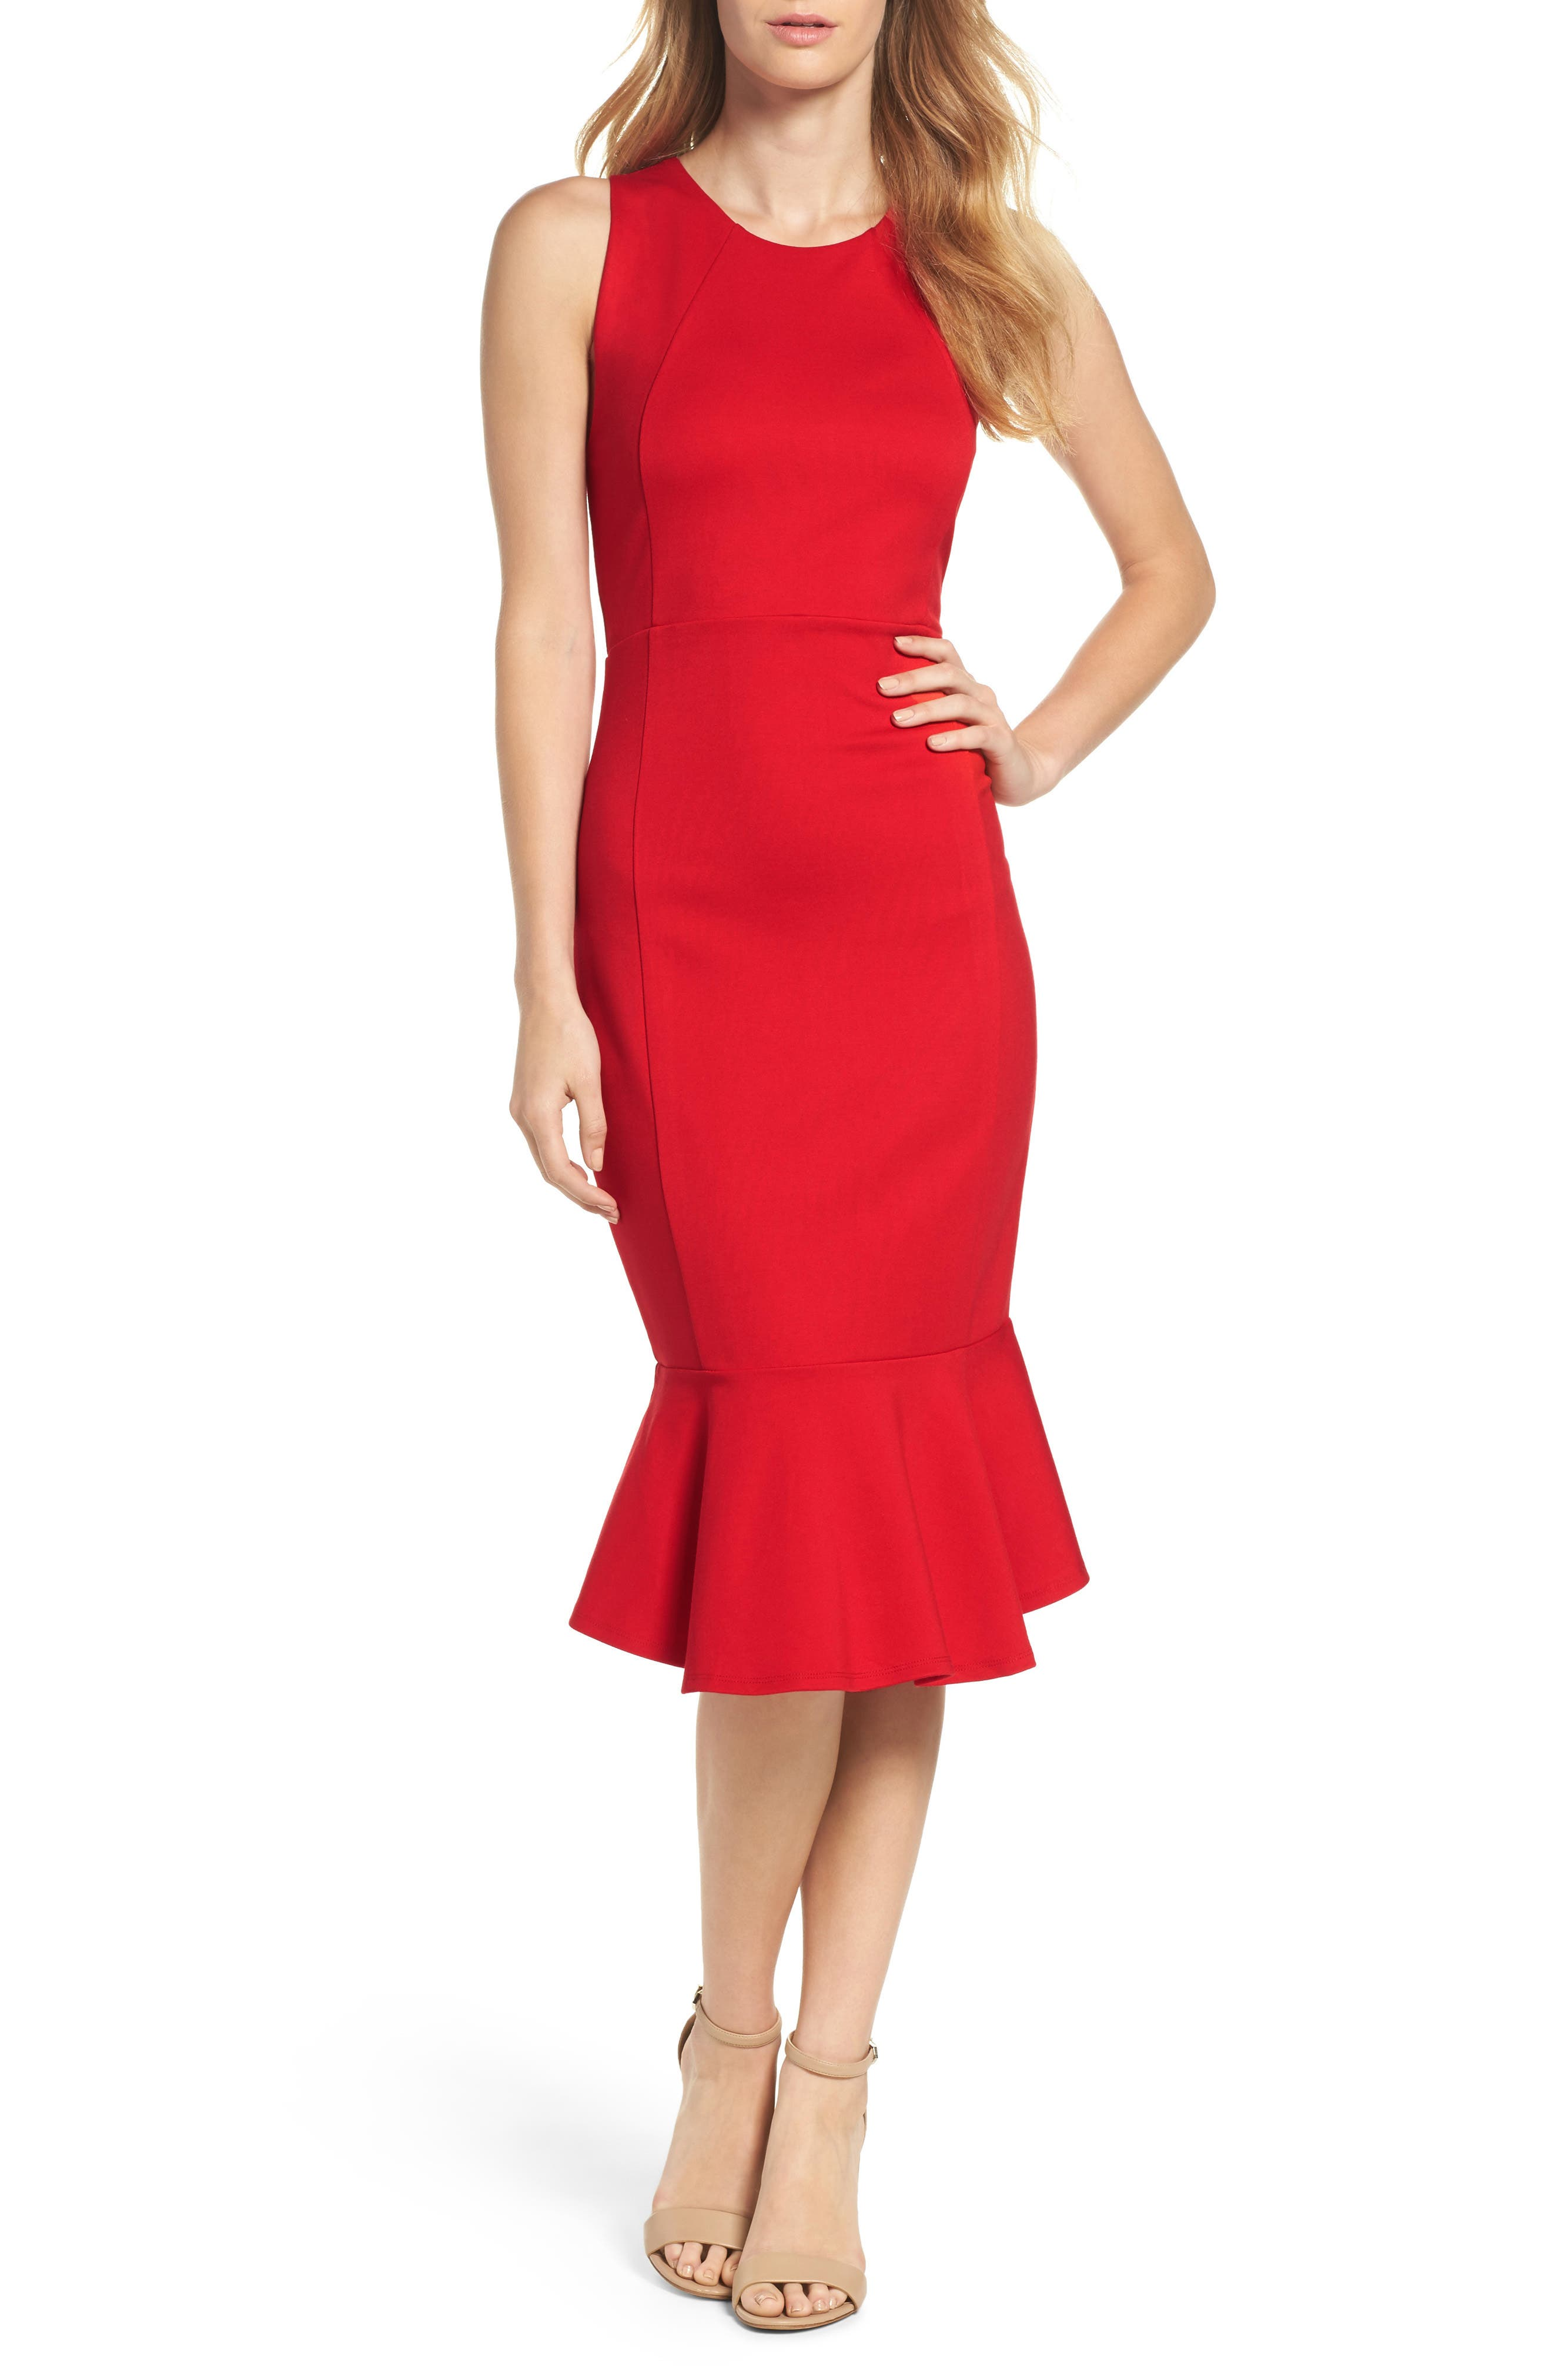 Alternate Image 1 Selected - Felicity & Coco Monrow Flutter Hem Midi Dress (Nordstrom Exclusive)